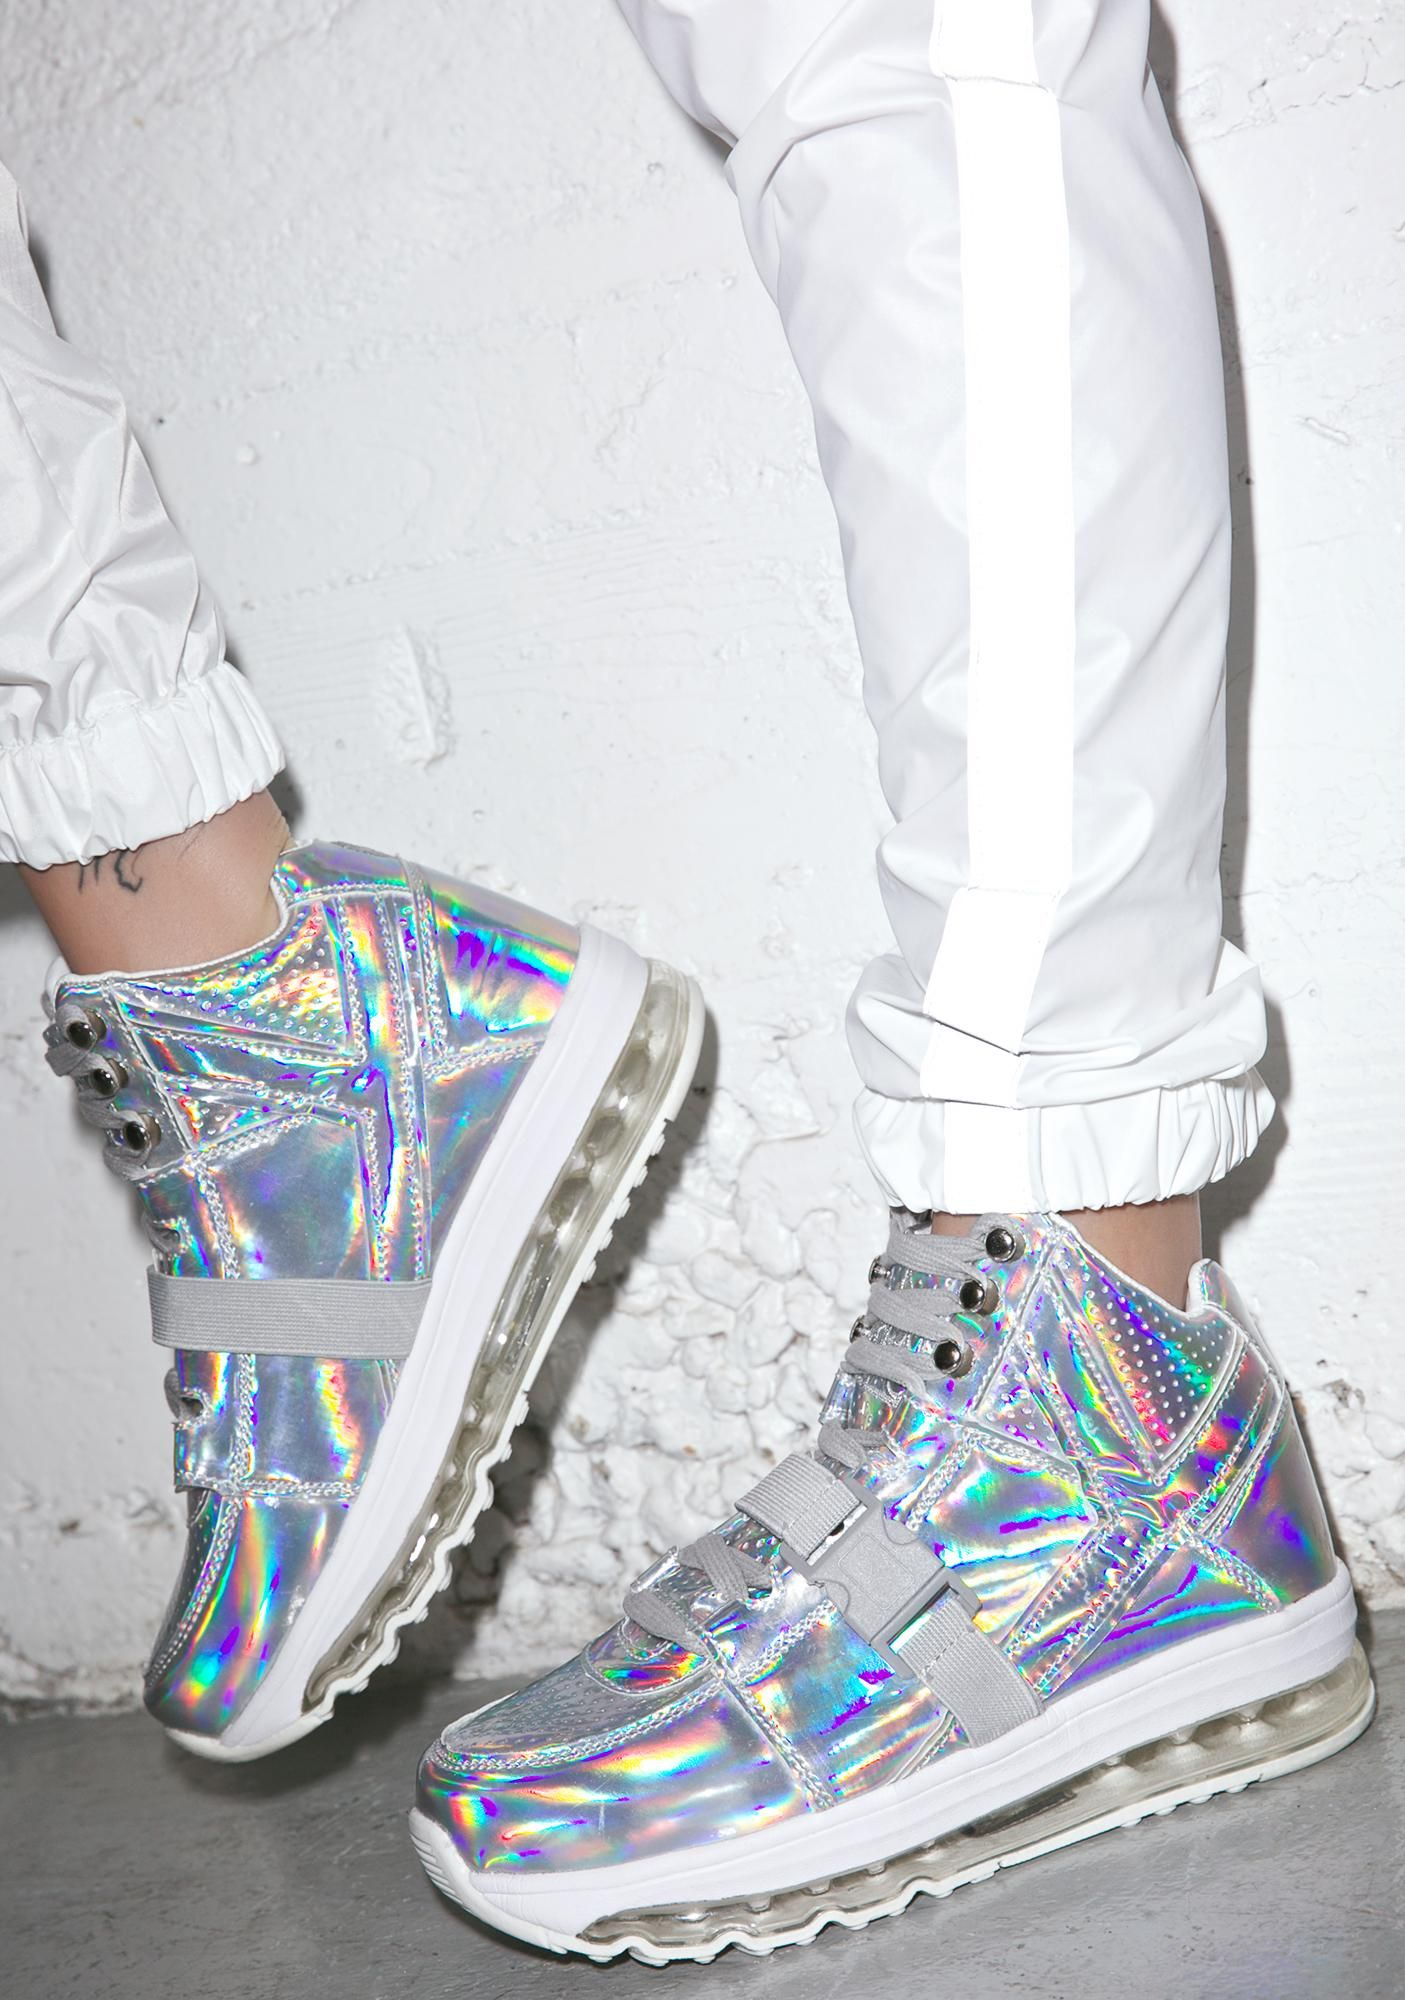 53718ddaf126 Y.R.U. Qozmo Aiire Light Up Hologram Sneakers are gonna take yer feel to  another planet